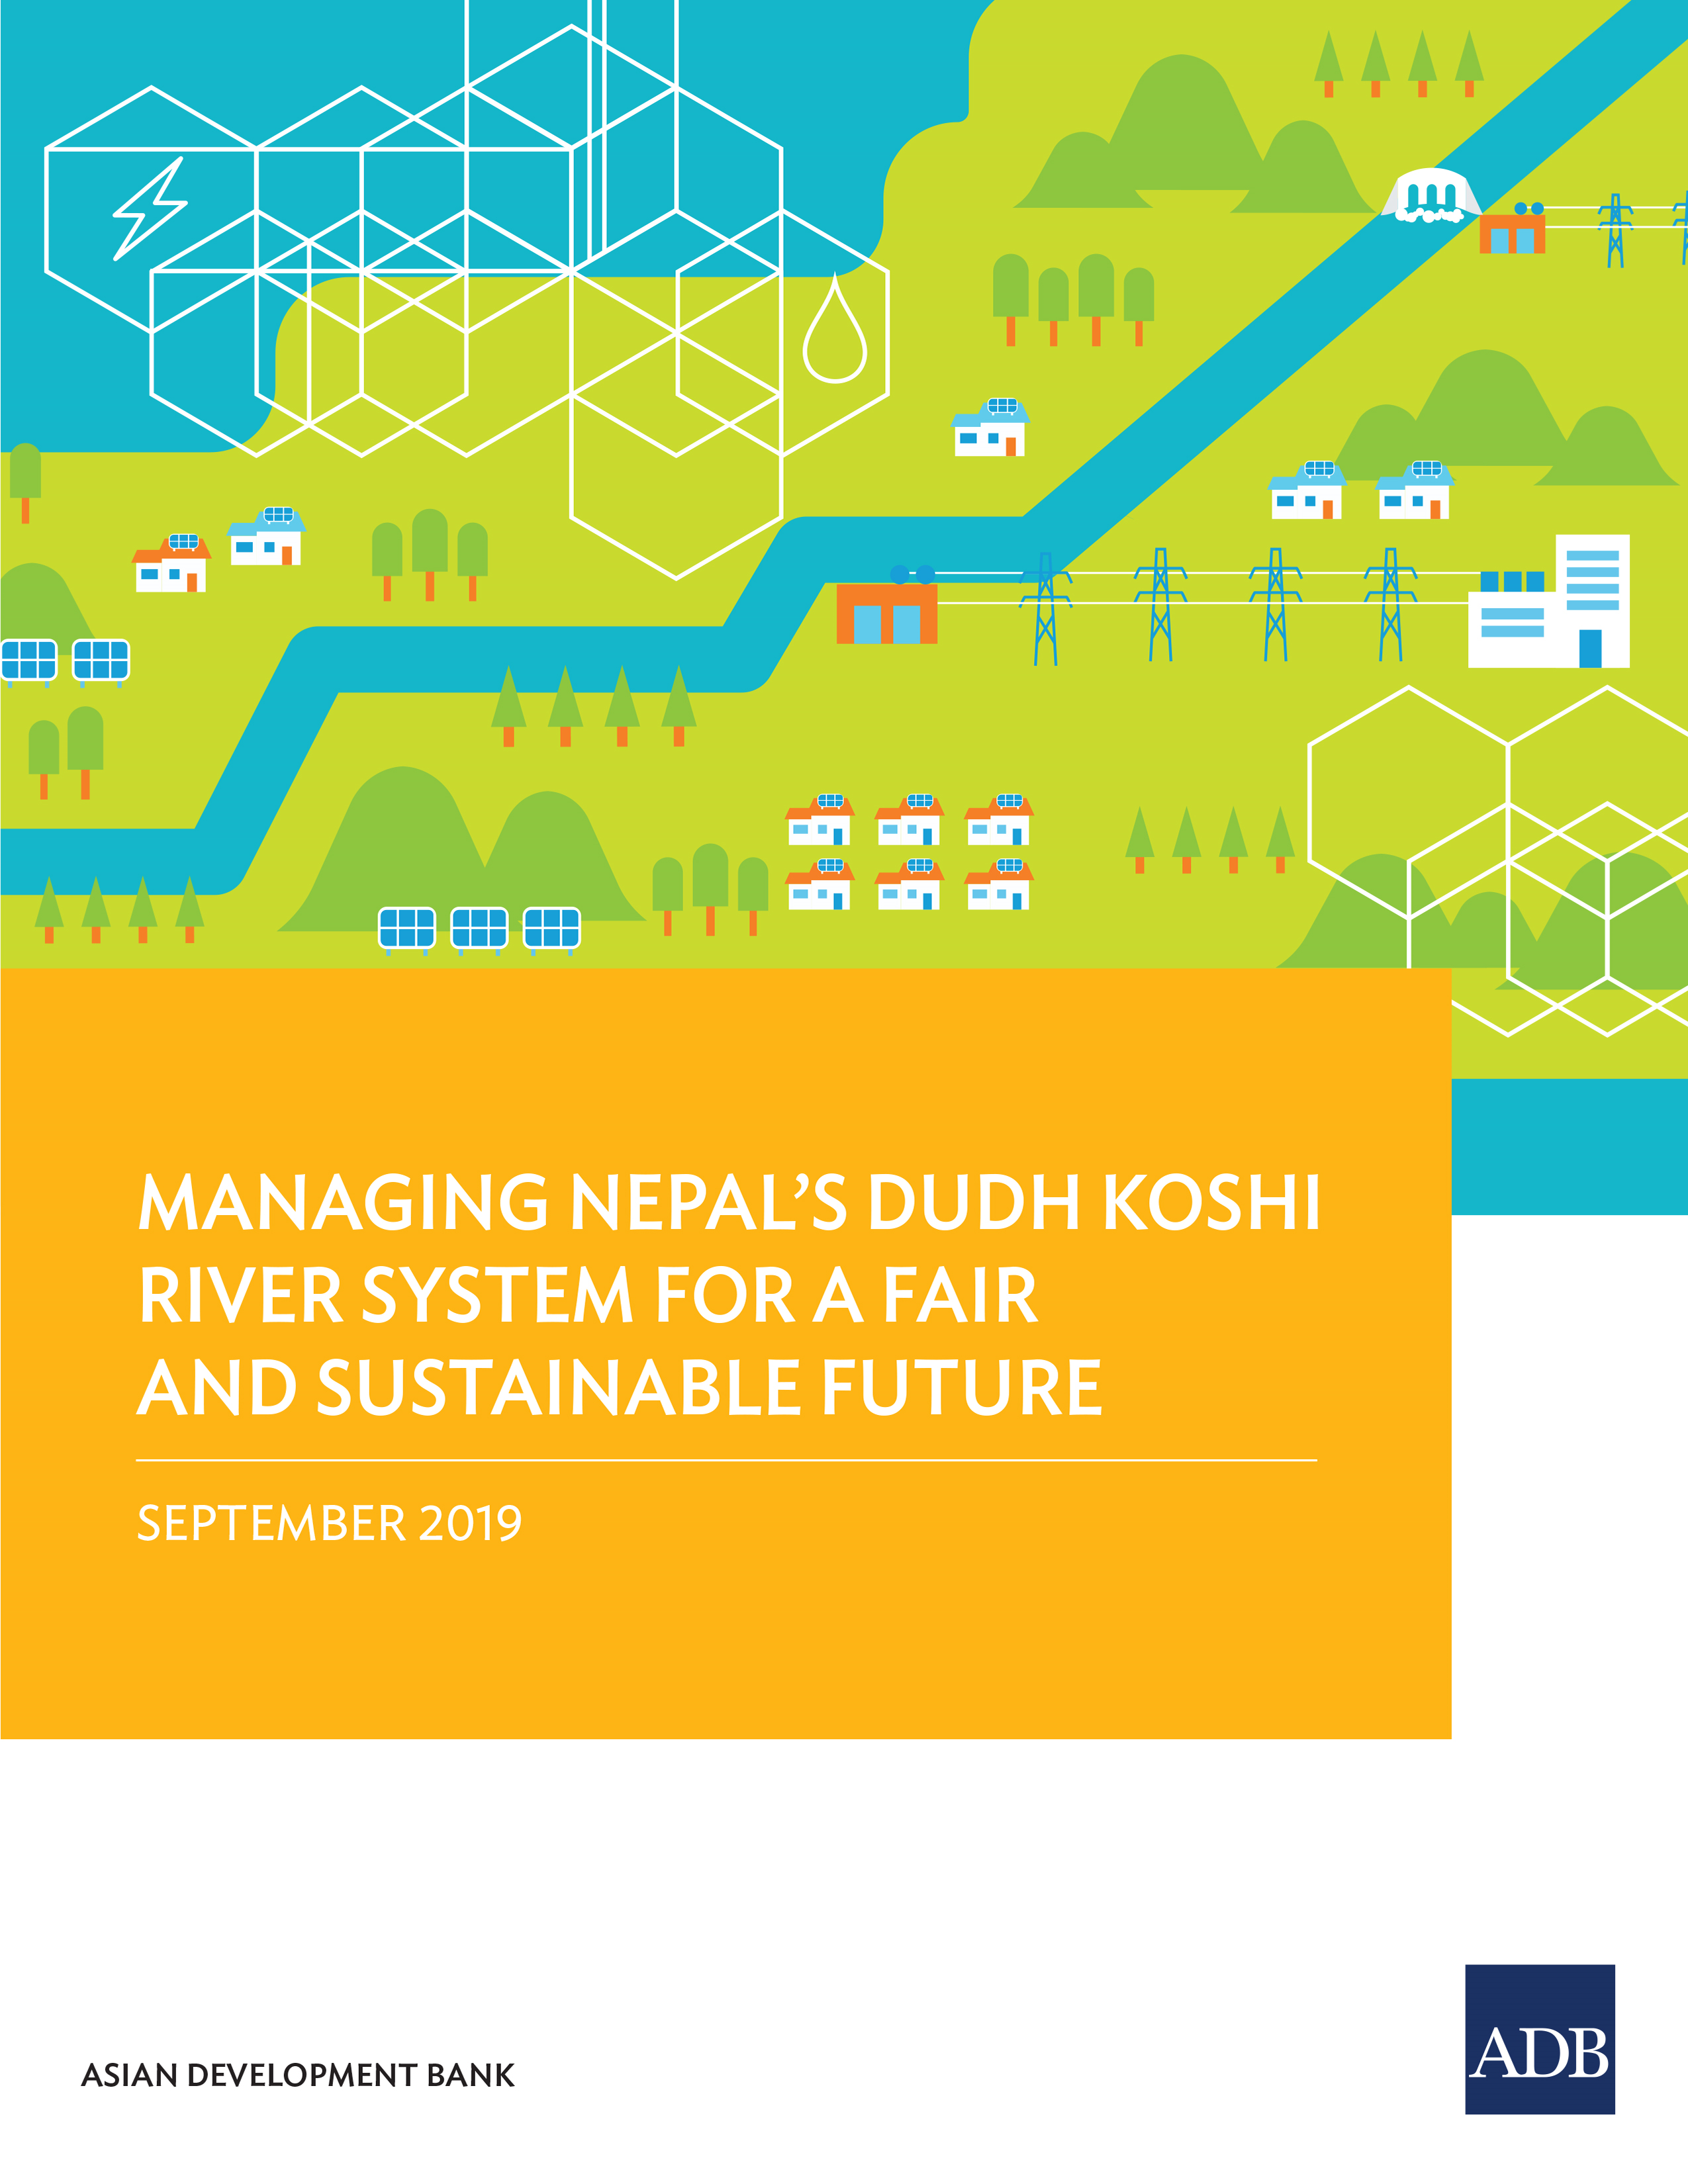 Managing Nepal's Dudh Koshi River System for a Fair and Sustainable Future